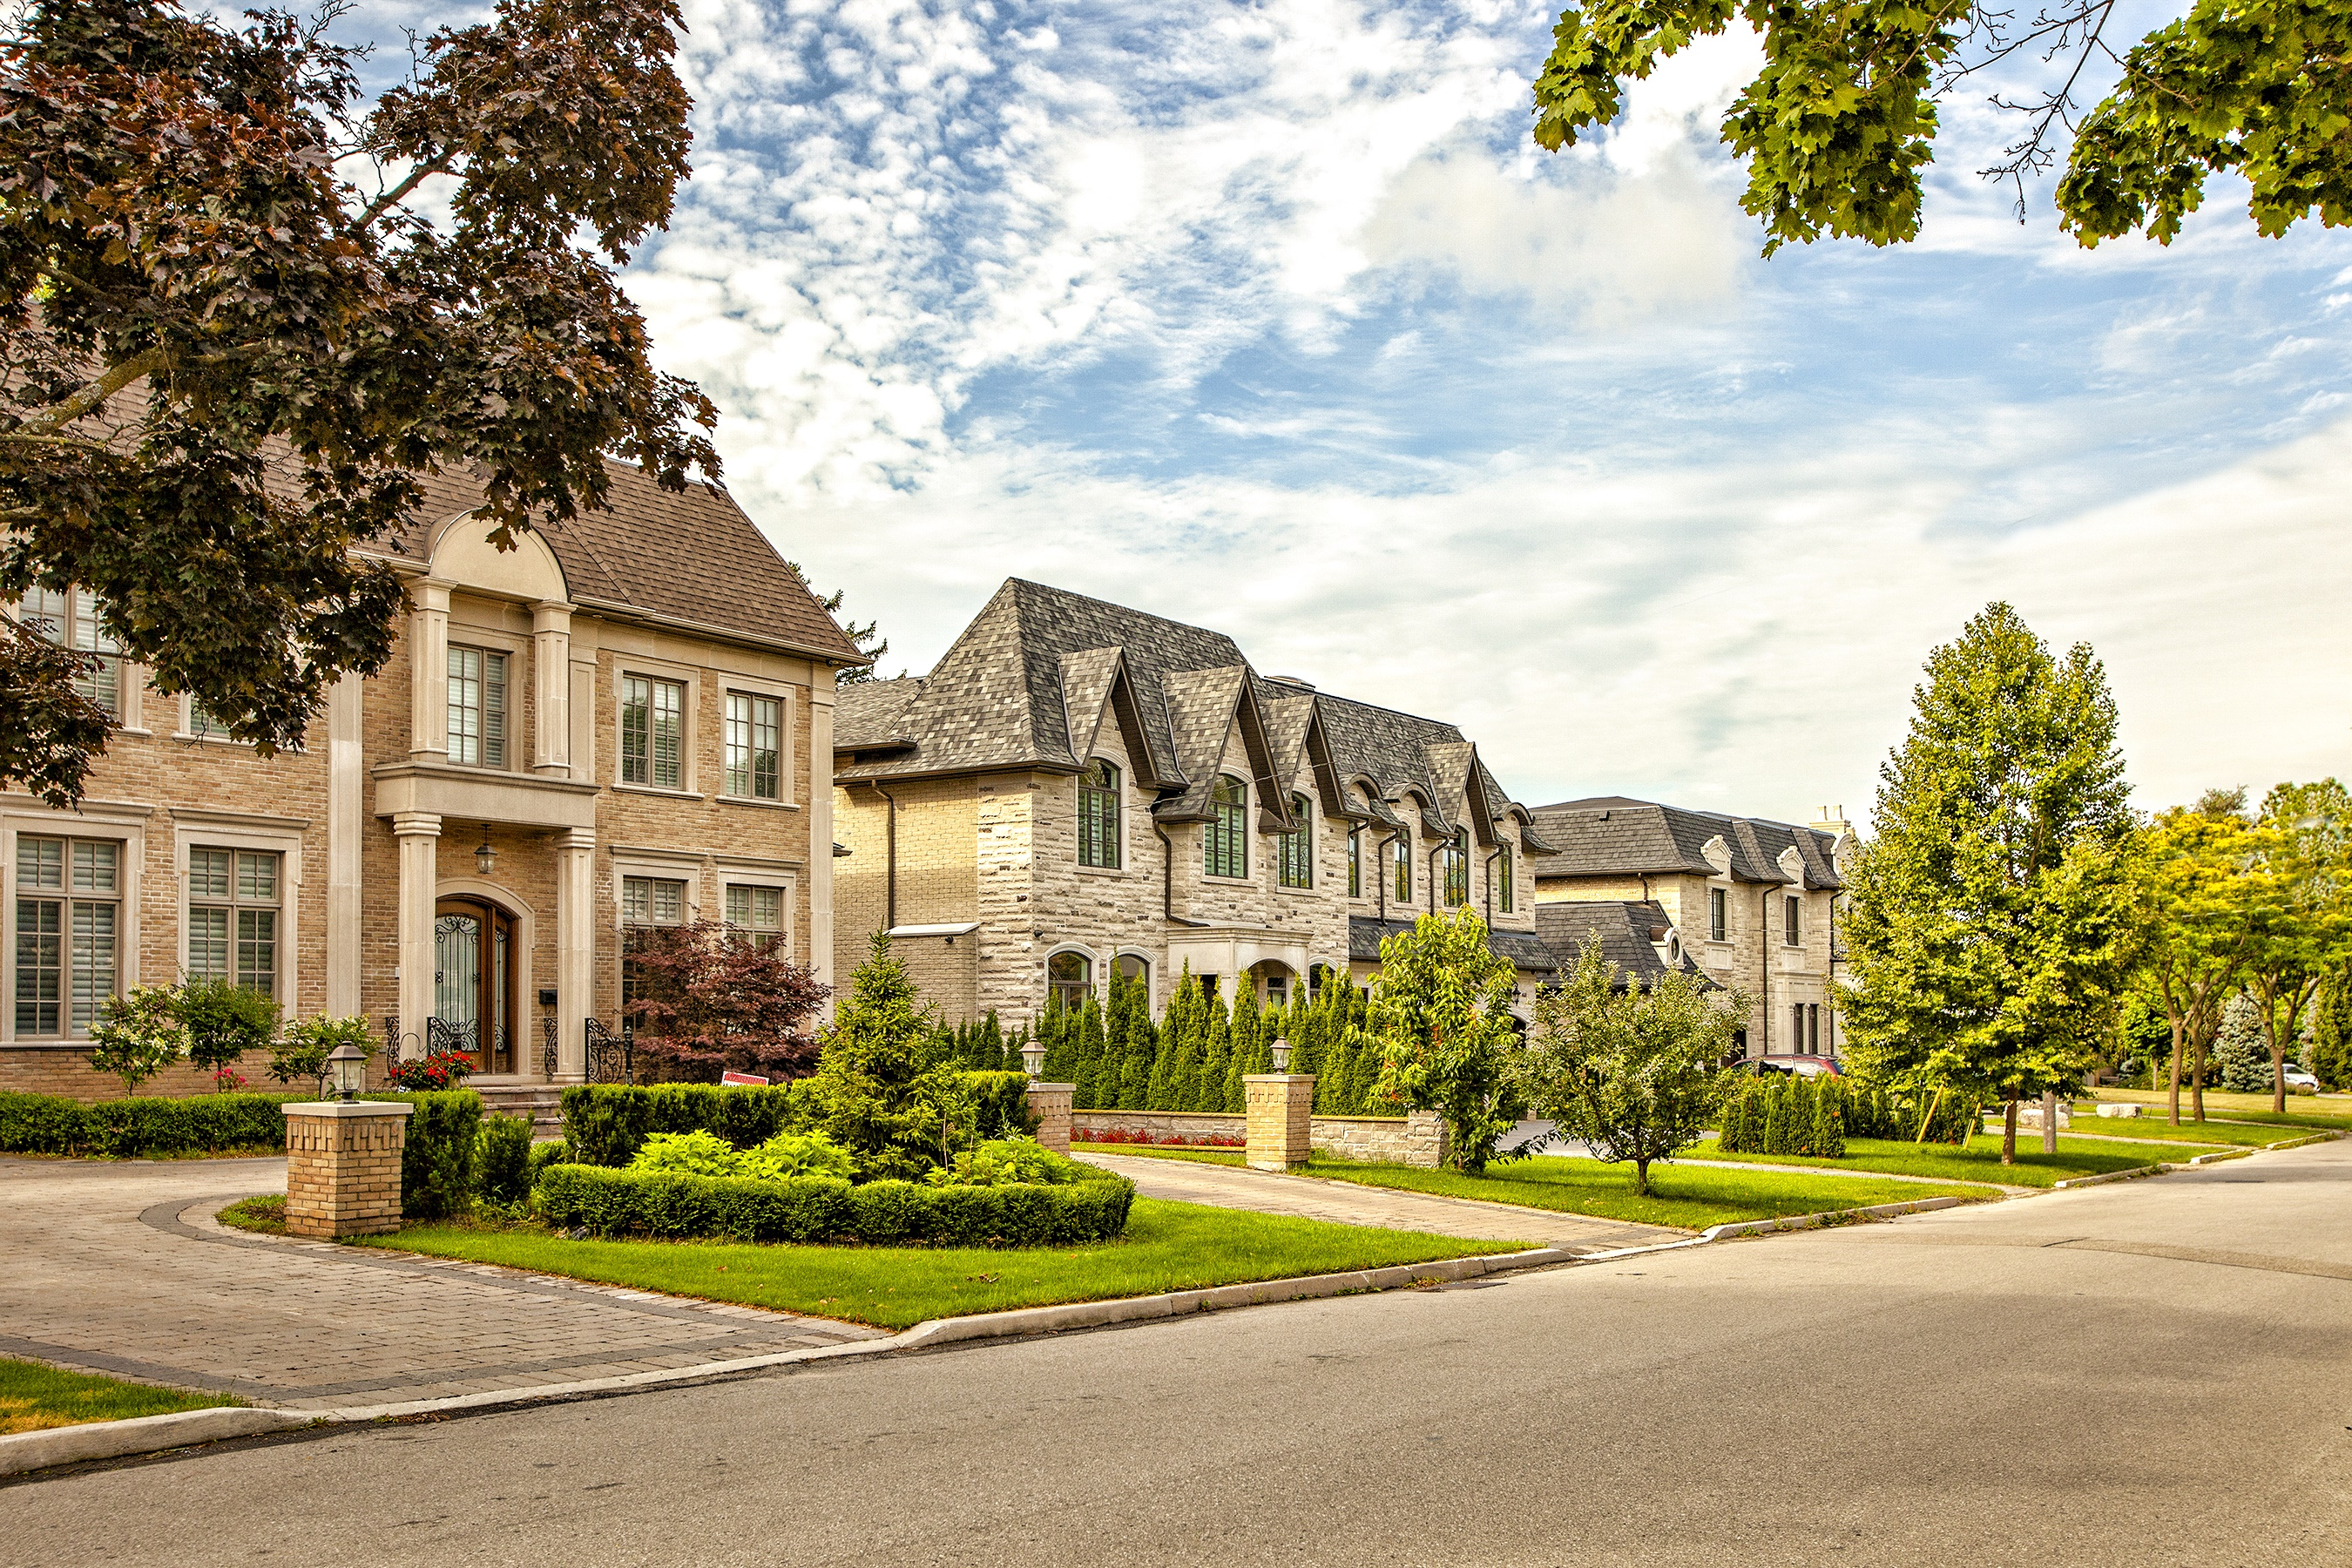 How To Buy A House In An Area Such As Toronto, Richmond Hill, Vaughan Or Markham?